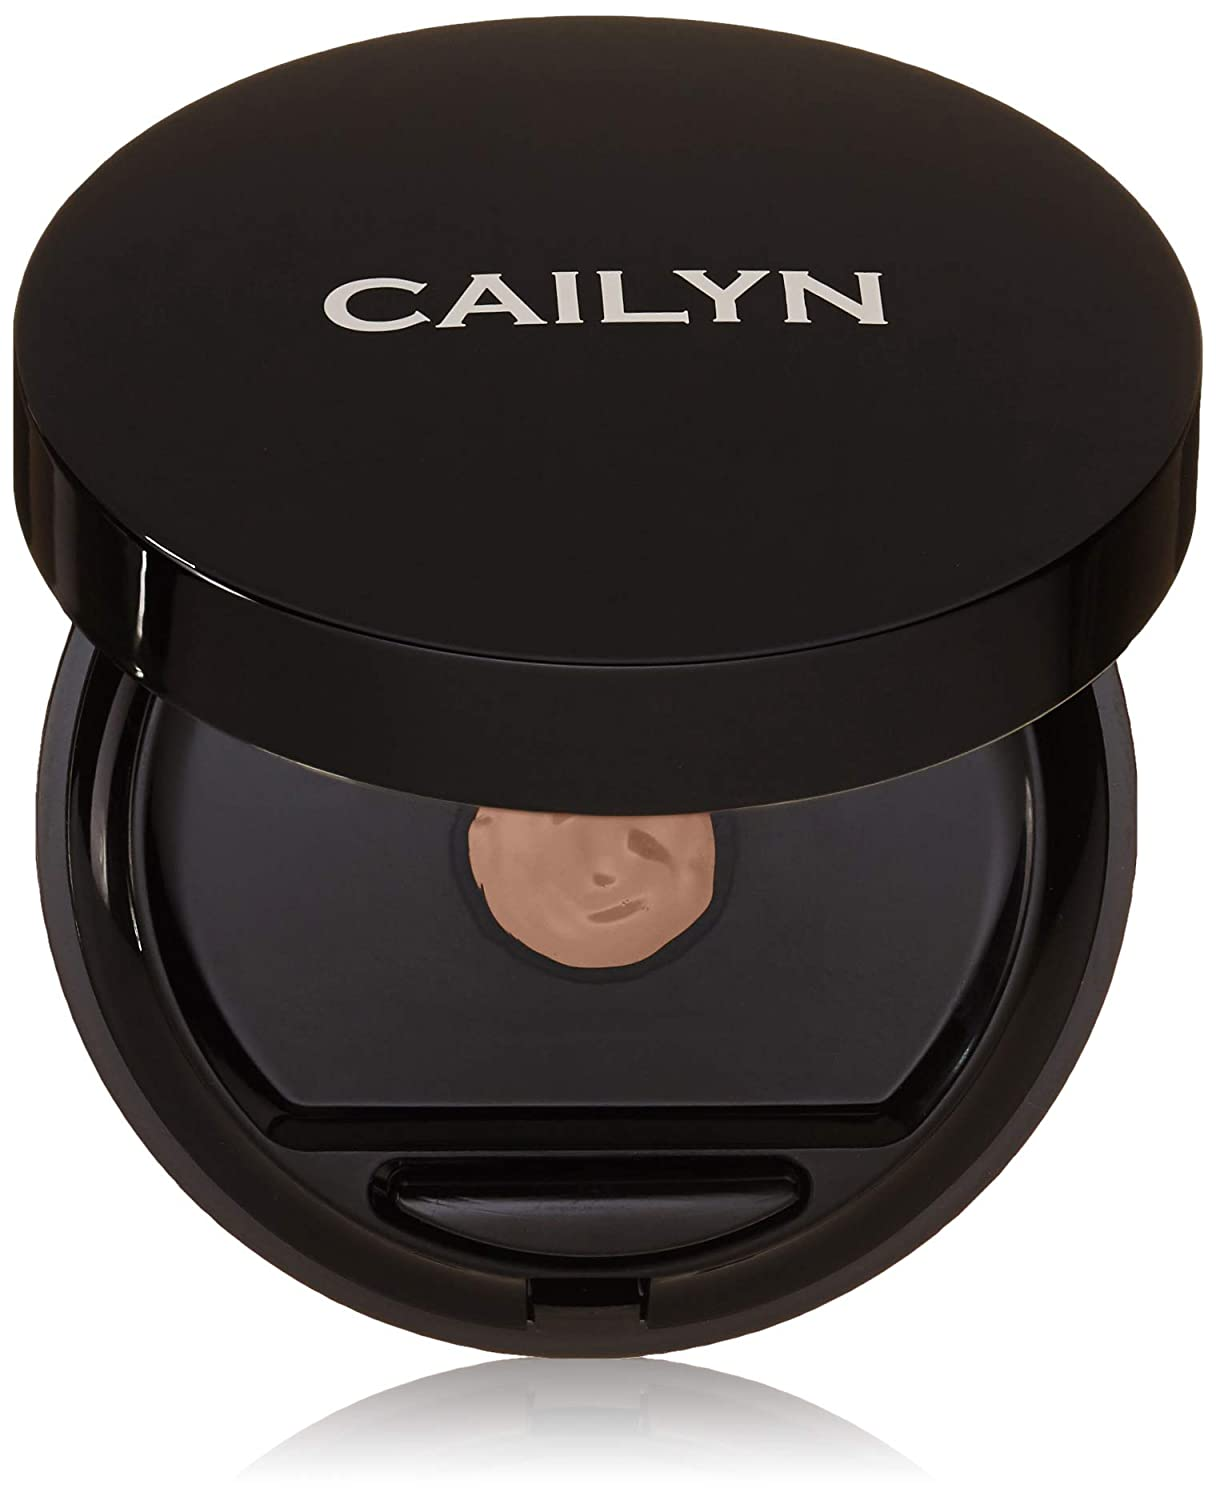 Cailyn Bb Compact Foundation, Amber - 15 G Cailyn Cosmetics BBFC05